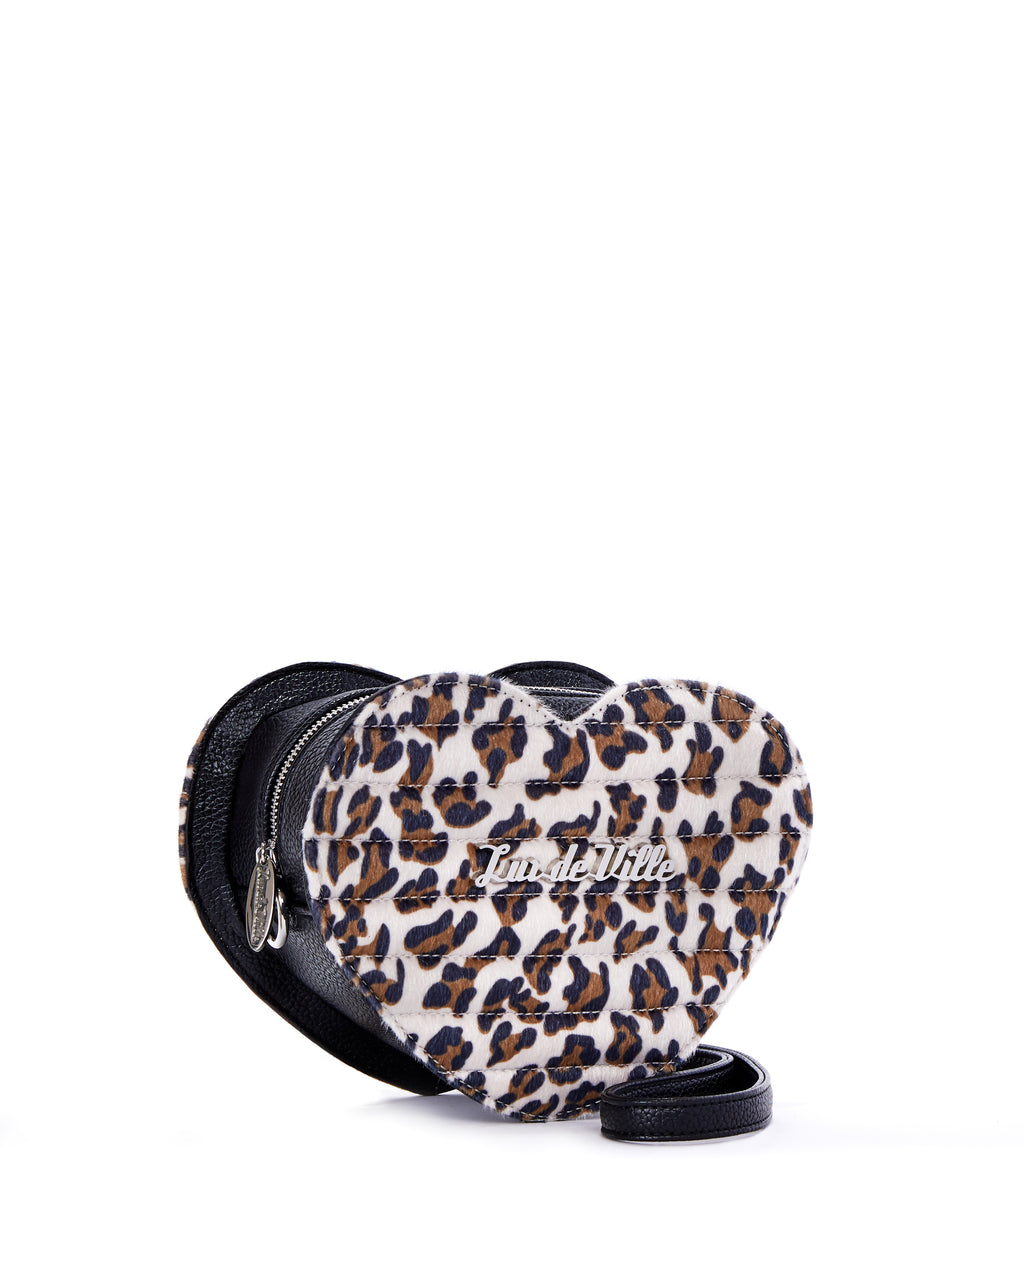 Mini Love You Handbag Brown Leopard - Limited Edition - Mini Atomic Totes